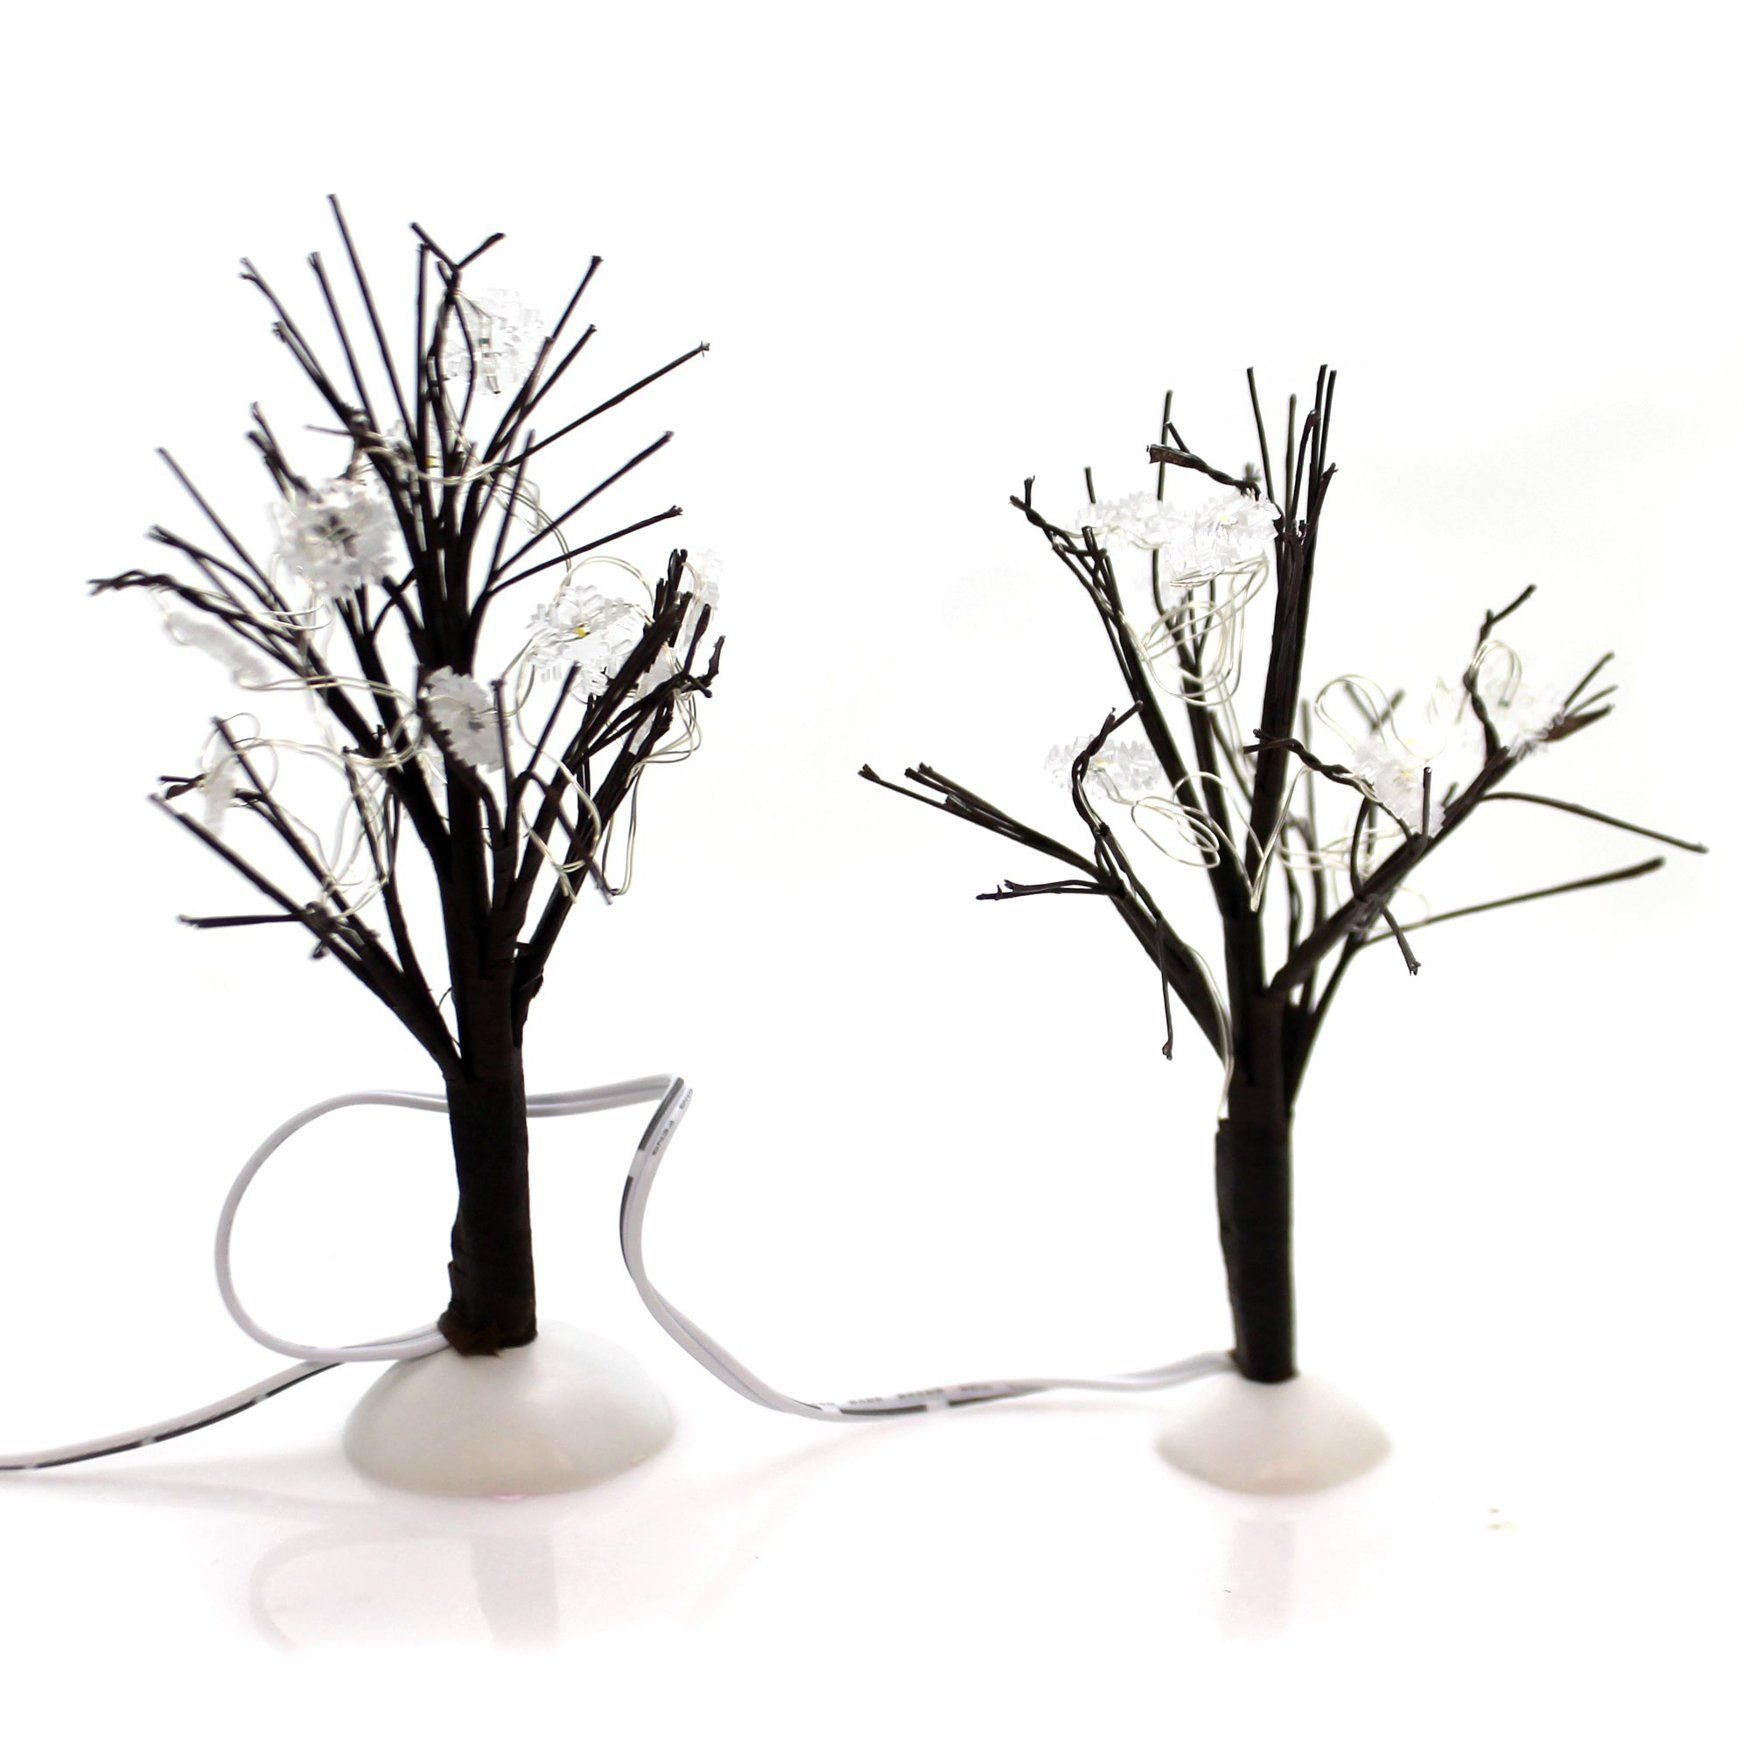 Department 56 Accessory Winter Flurries Bare Branch Trees Wire Set 2 4059770 Tree Branches Department 56 Christmas Store